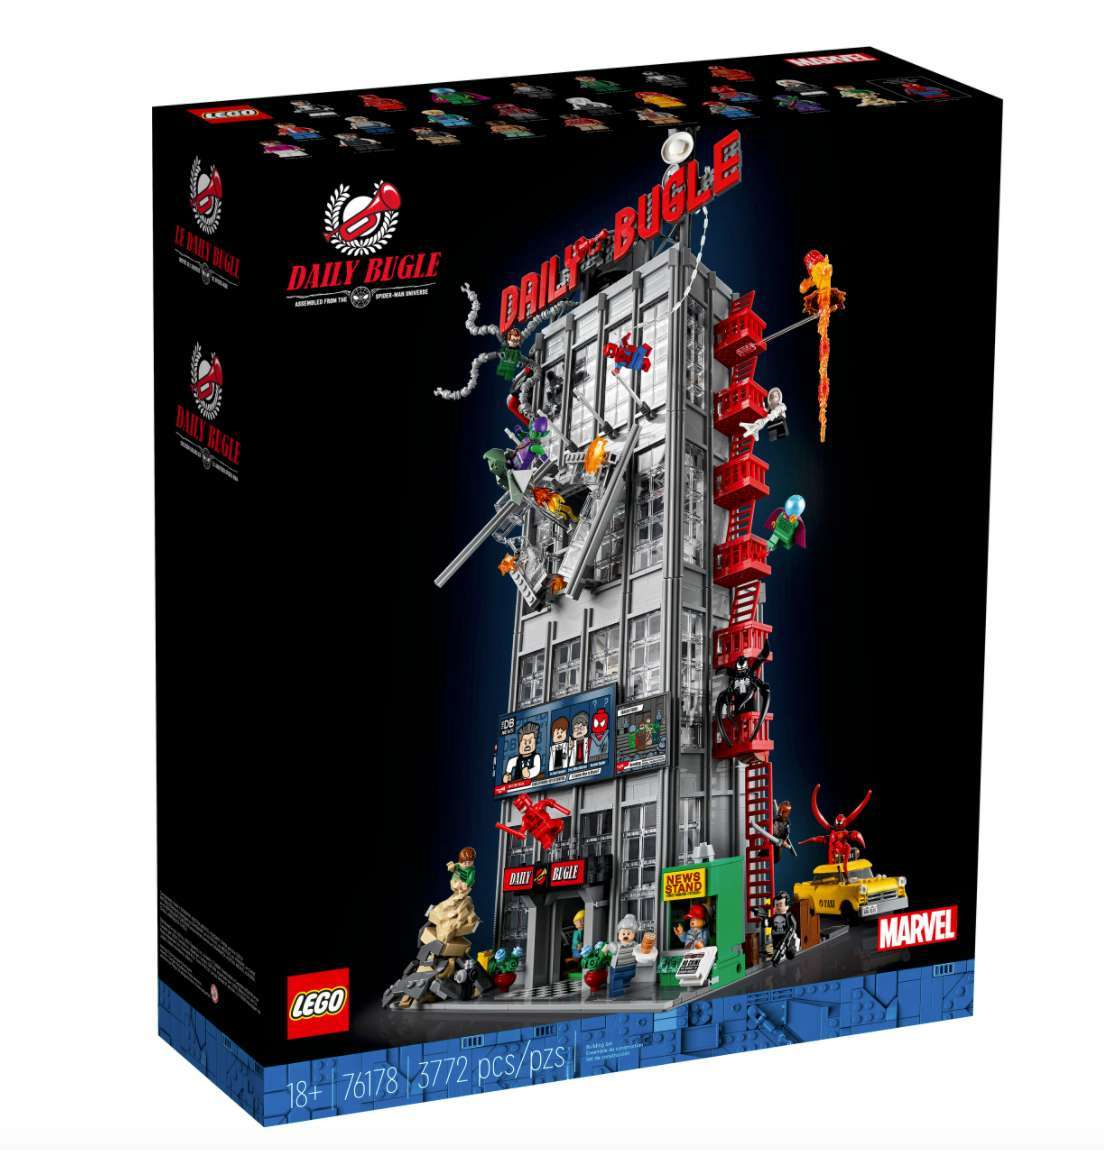 lego-spider-man-daily-bugle- 2021-05-17 at 10.24.50 AM